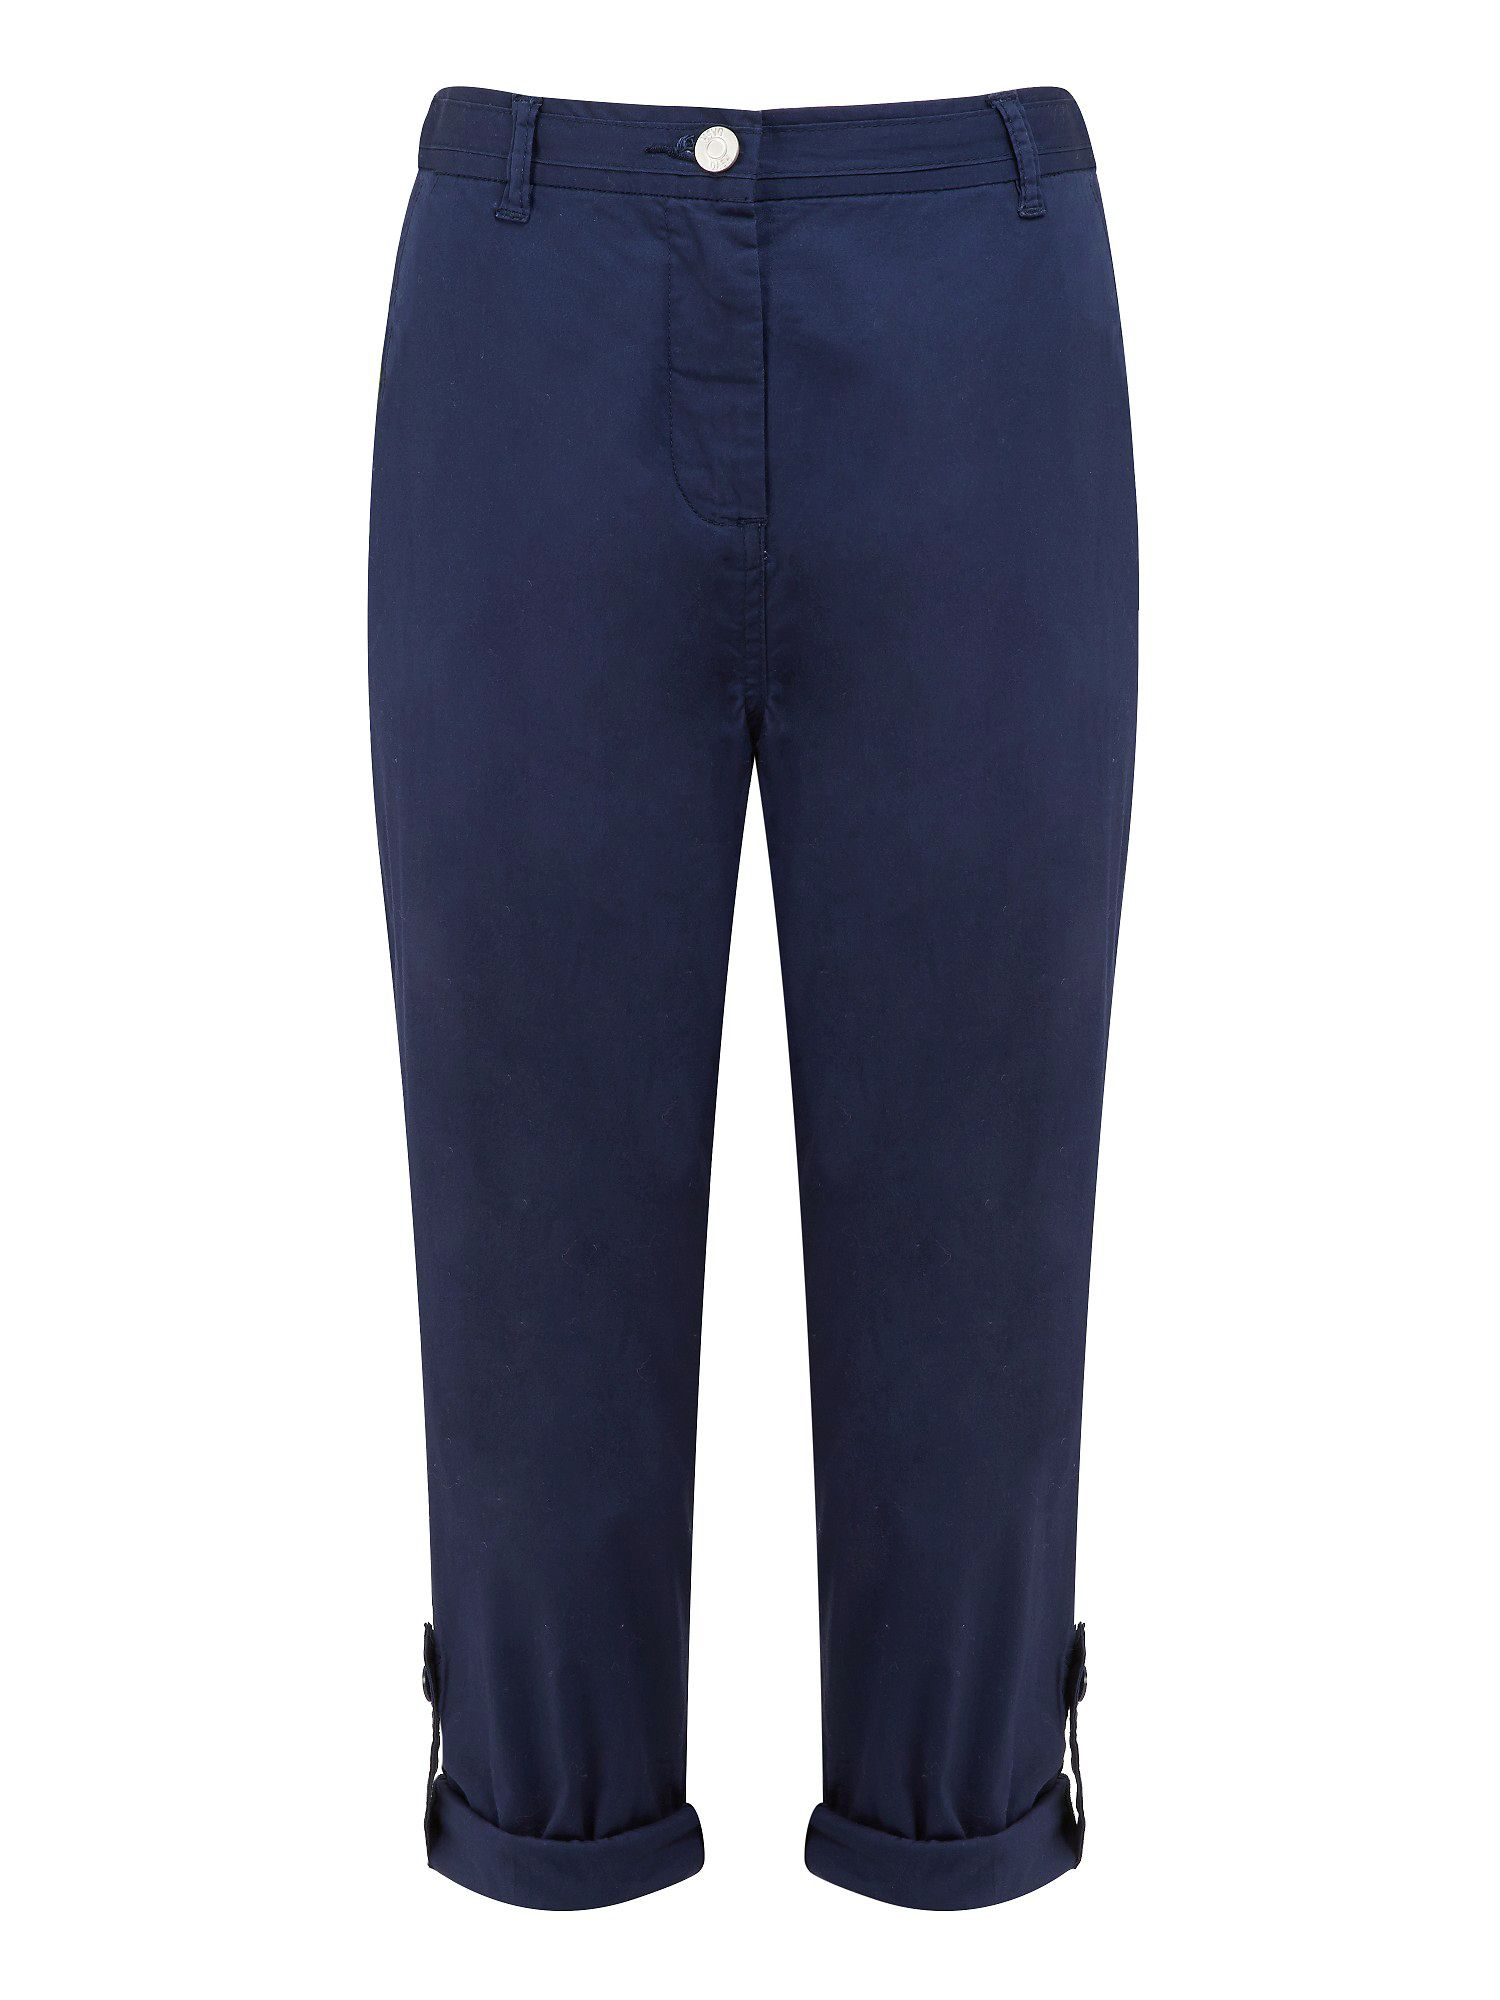 Roll up cotton trouser regular